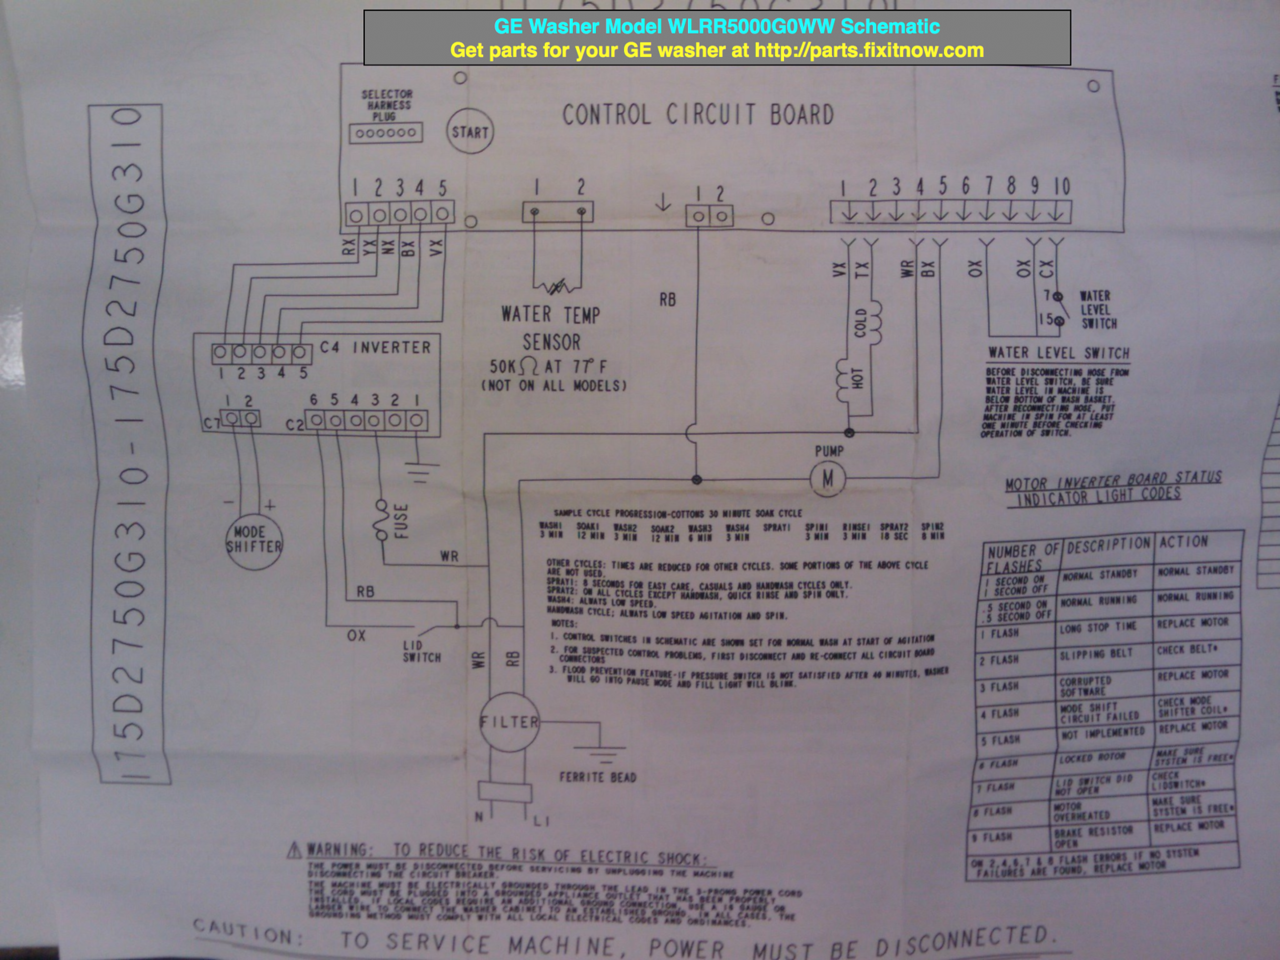 Maytag Oven Wiring Schematics Diagrams And Appliantology Mgr57 Gas Range Diagram Schematic Ge Washer Model Wlrr5000g0ww